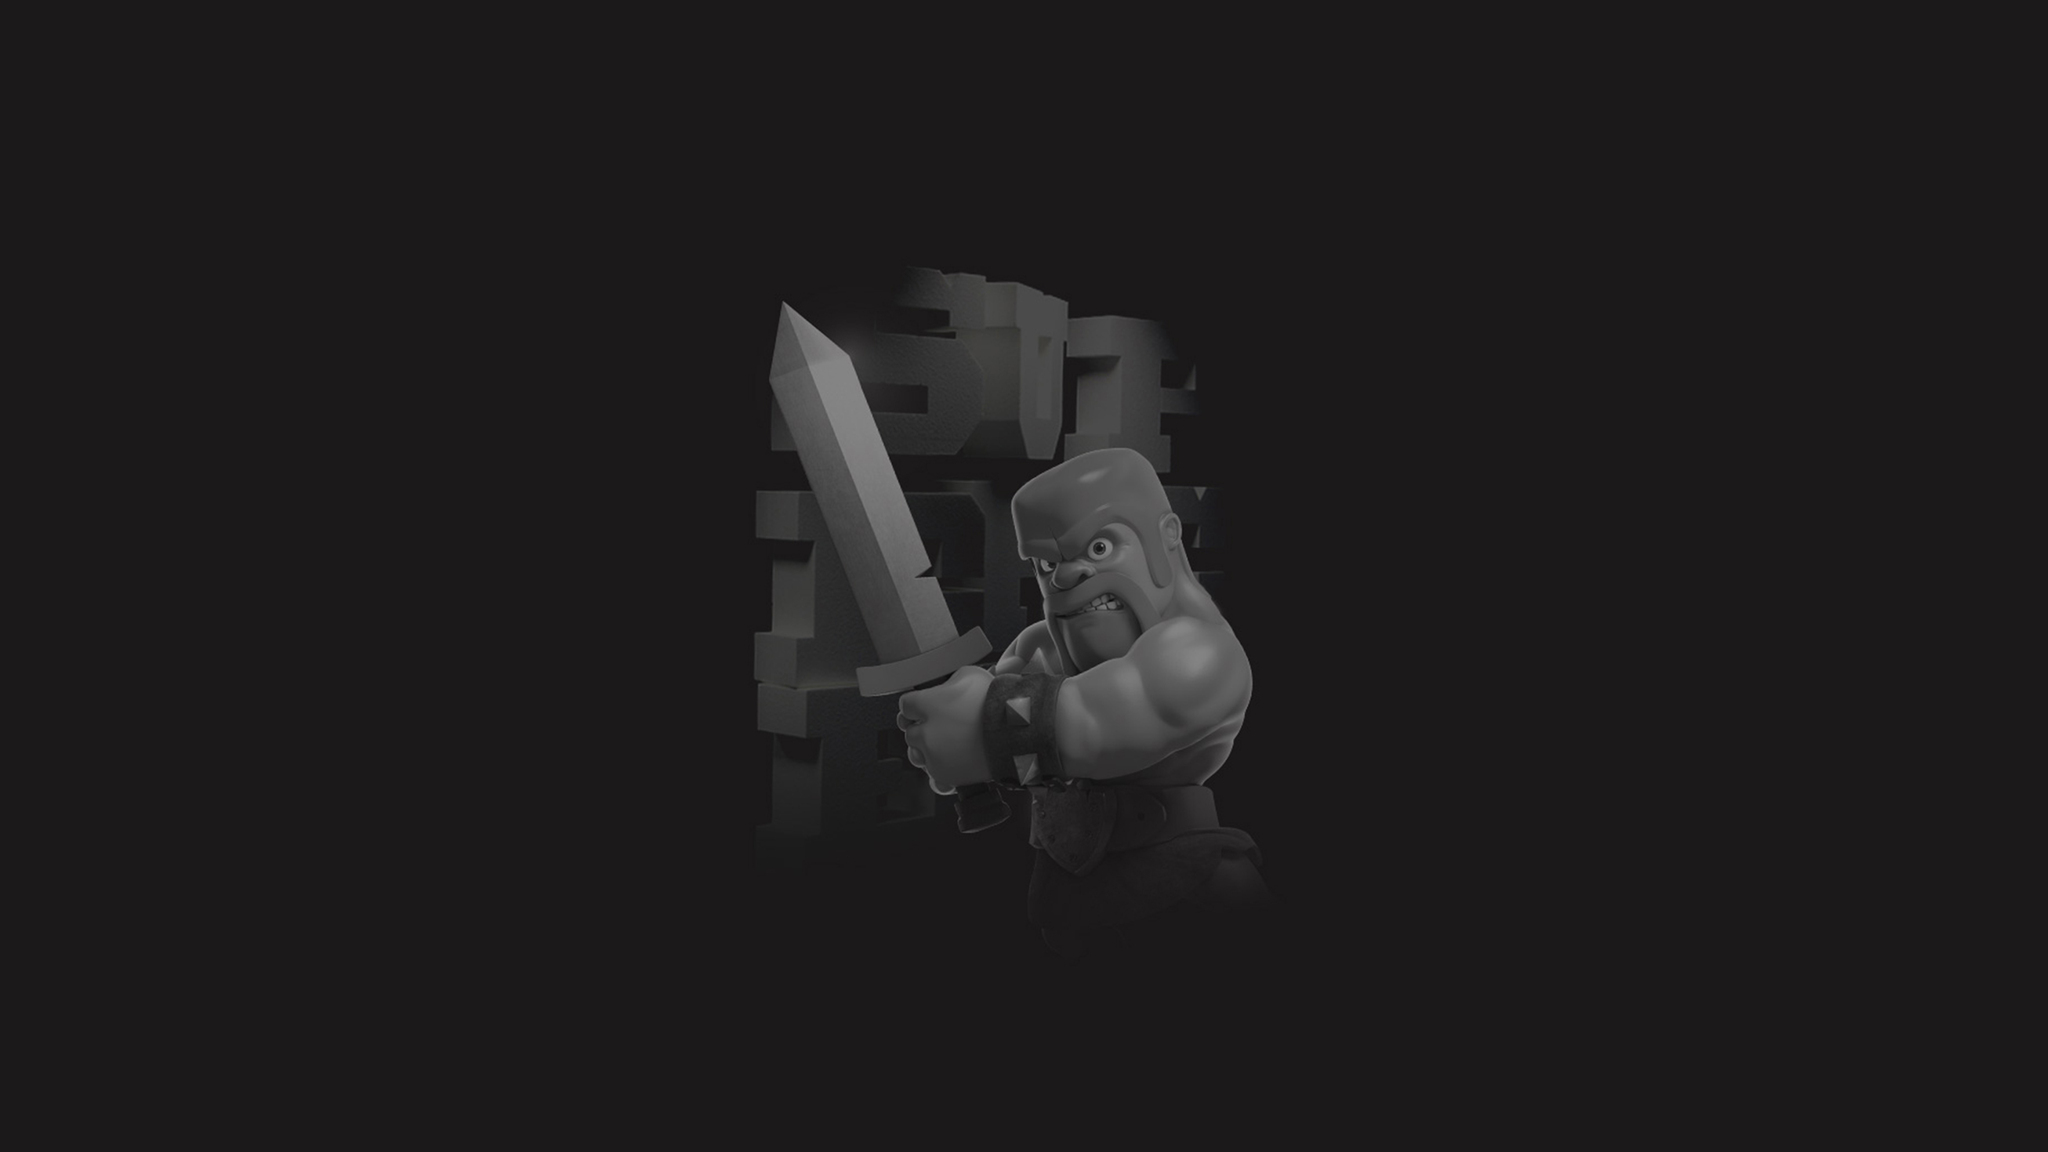 Barbarian Clash Of Clans Hd Hd Games 4k Wallpapers: Image Clash Royale 2048x1152